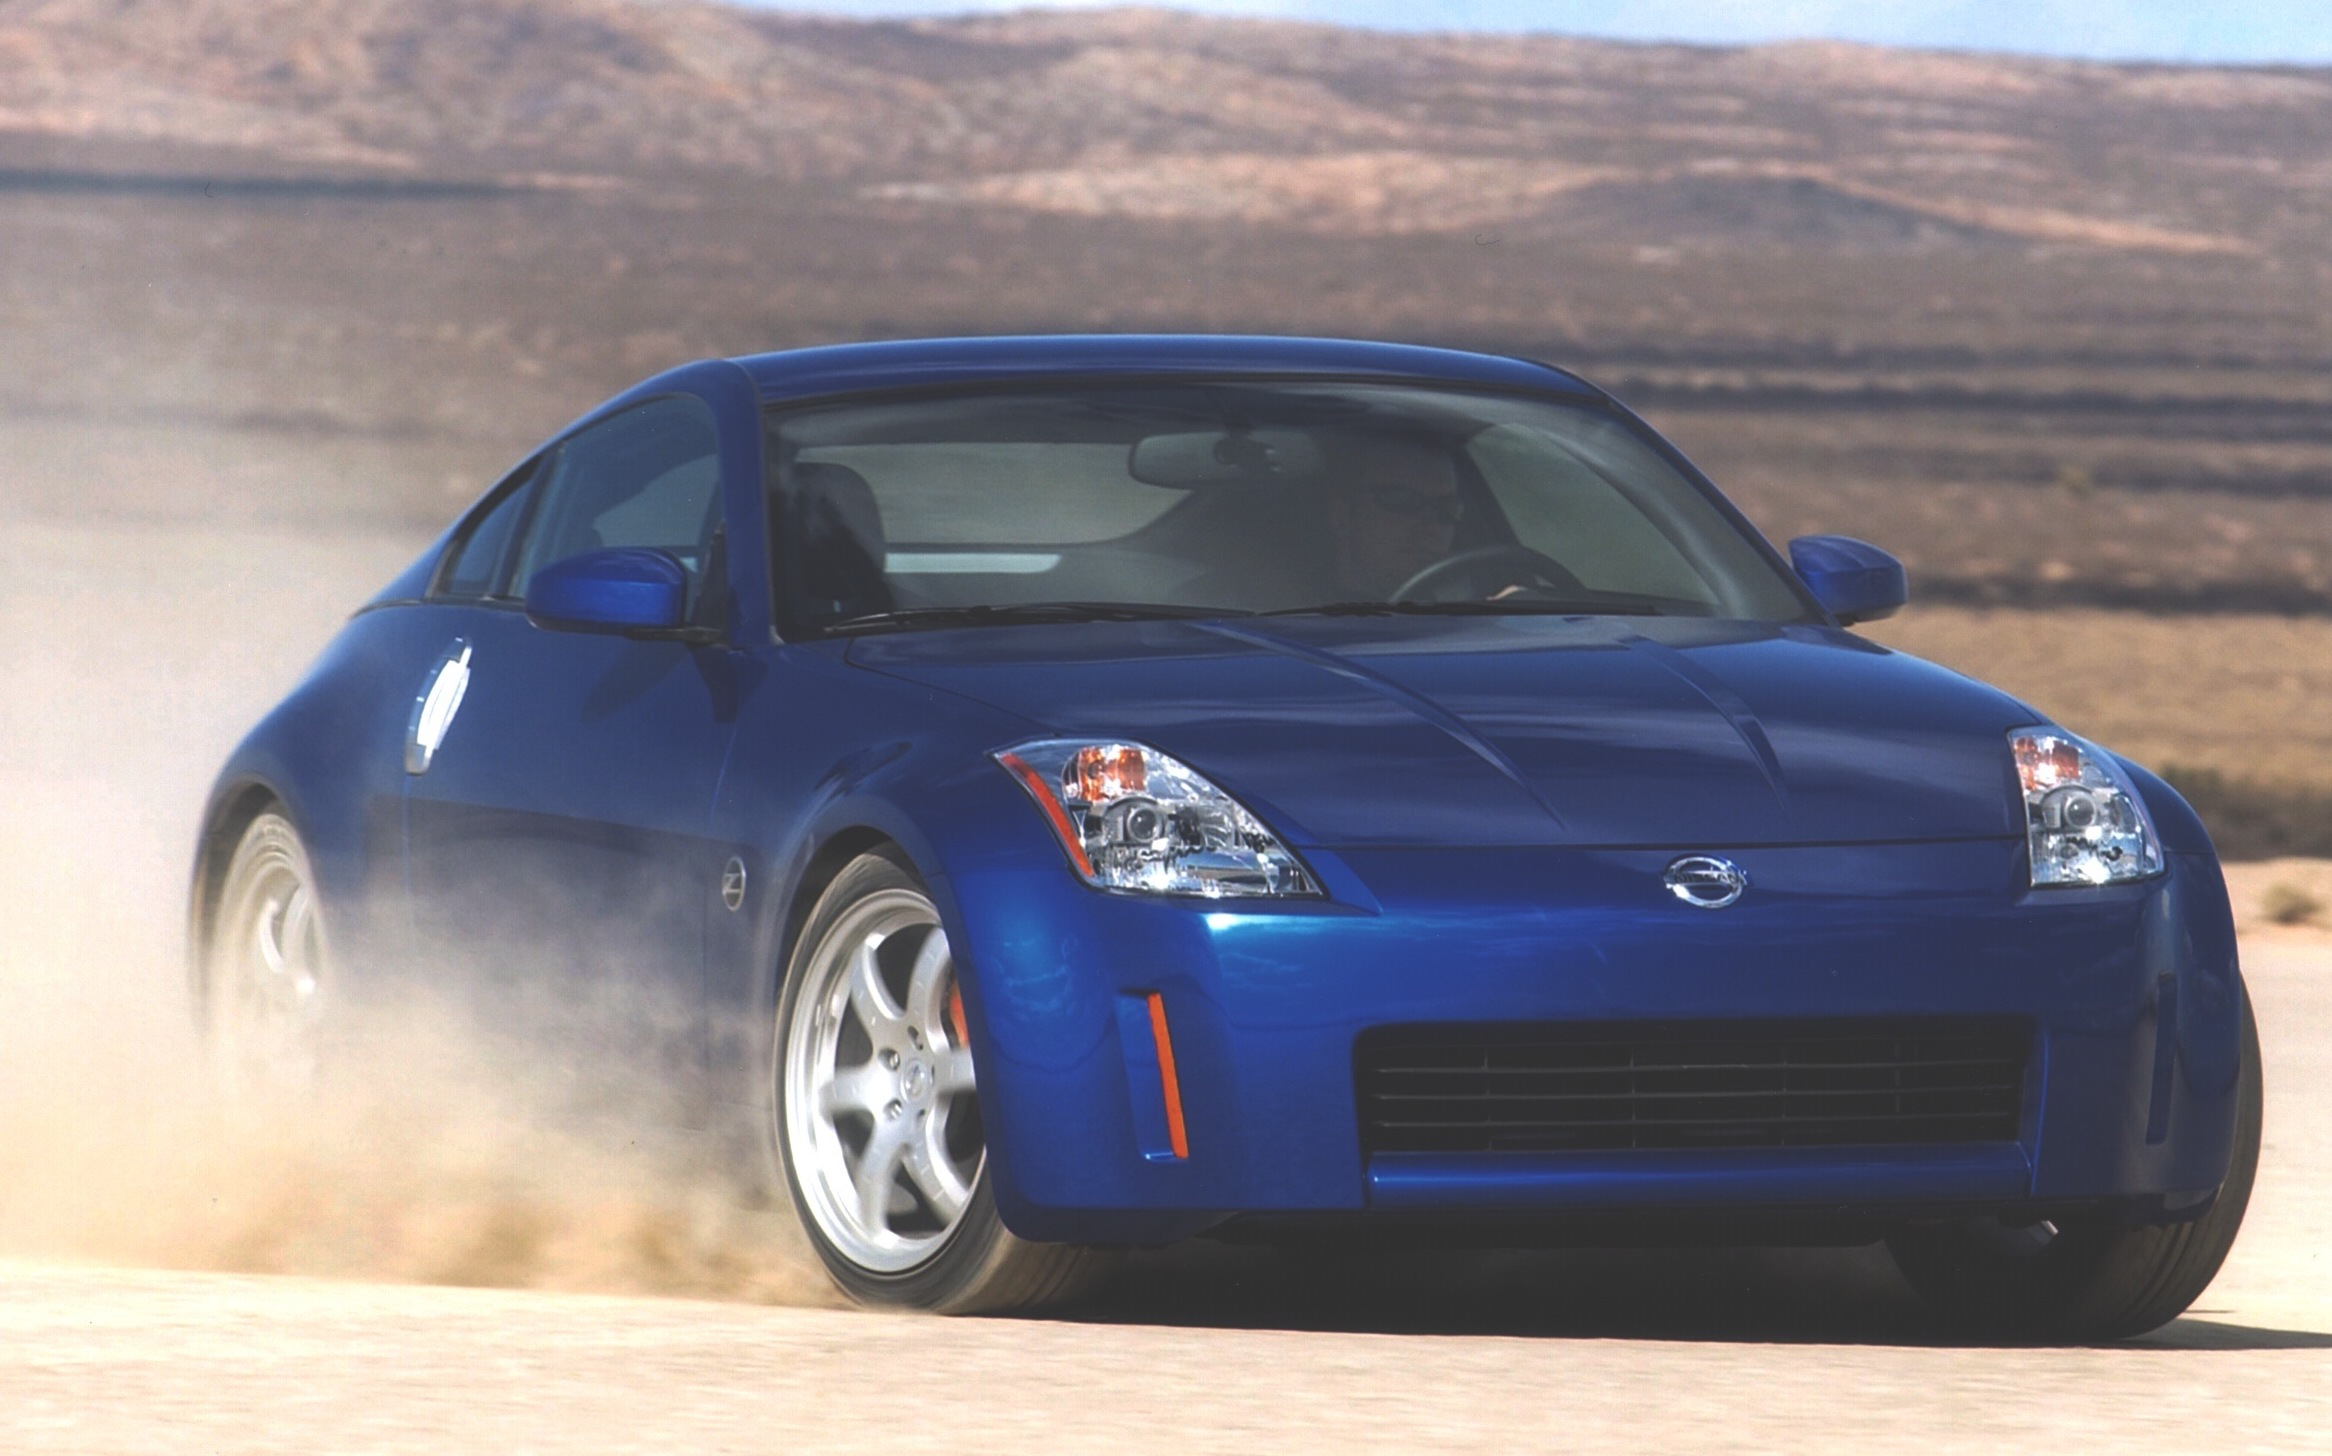 The 350Z marked a comeback of the 'Z' nameplate